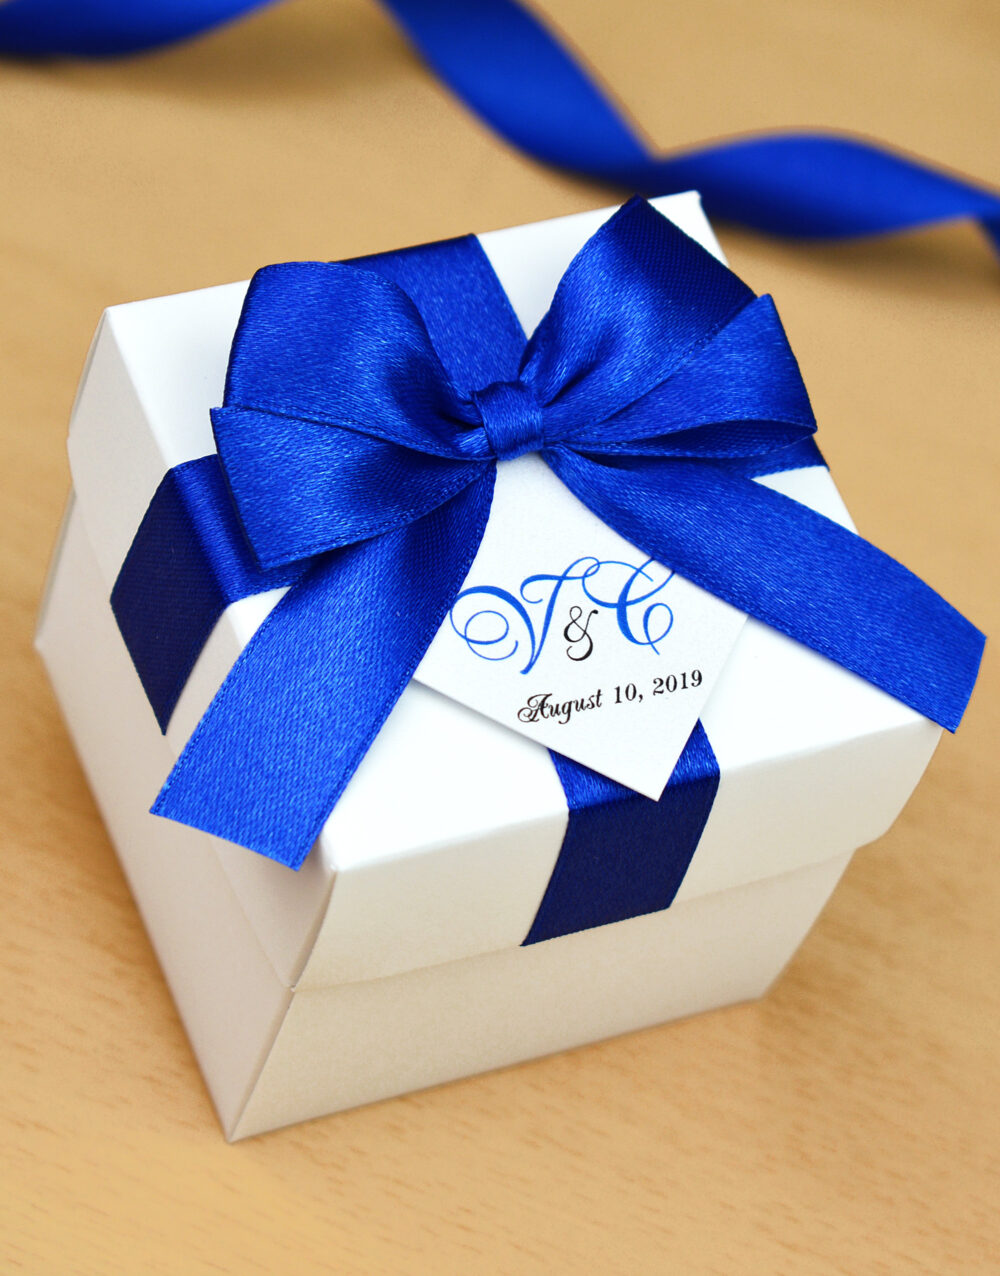 Royal Blue Wedding Favor Box, Bonbonniere With Satin Ribbon Bow & Your Initials Personalized Weddings Candy Boxes For Guests